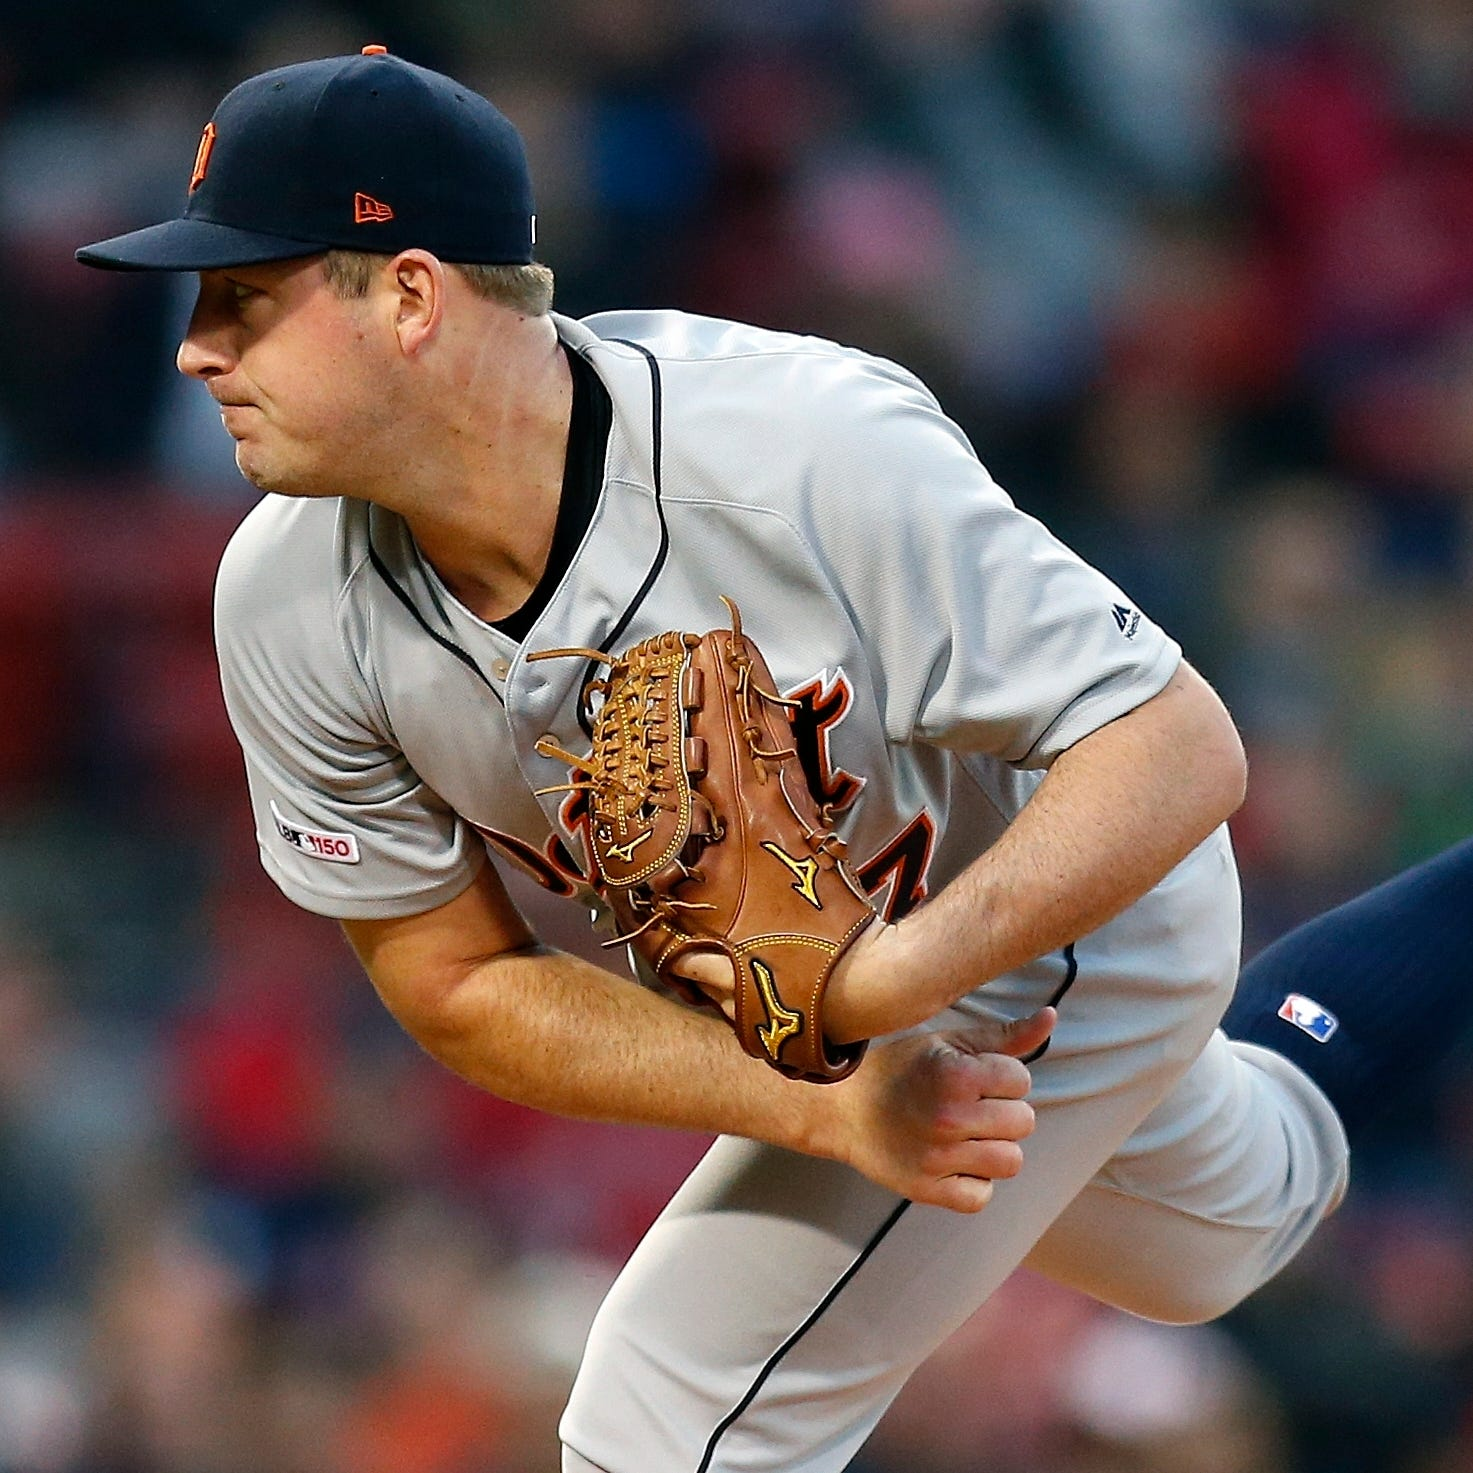 Best-case scenario: Zimmermann dodged second Tommy John surgery, for now